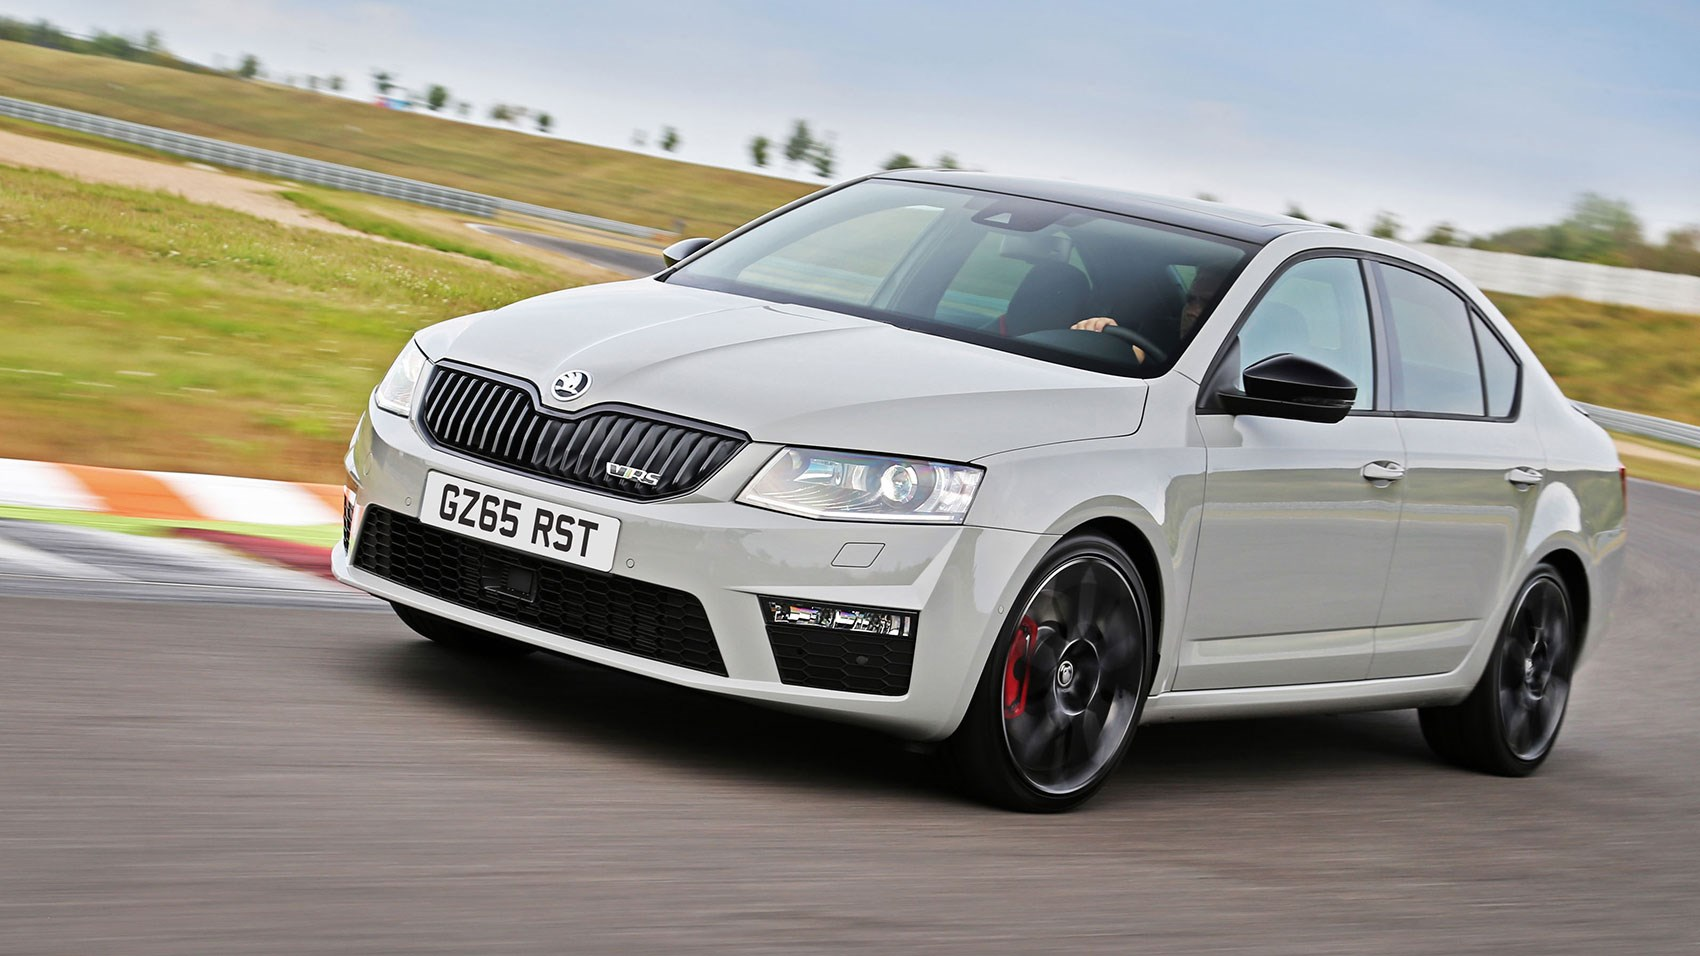 skoda octavia vrs 230 2015 review by car magazine. Black Bedroom Furniture Sets. Home Design Ideas